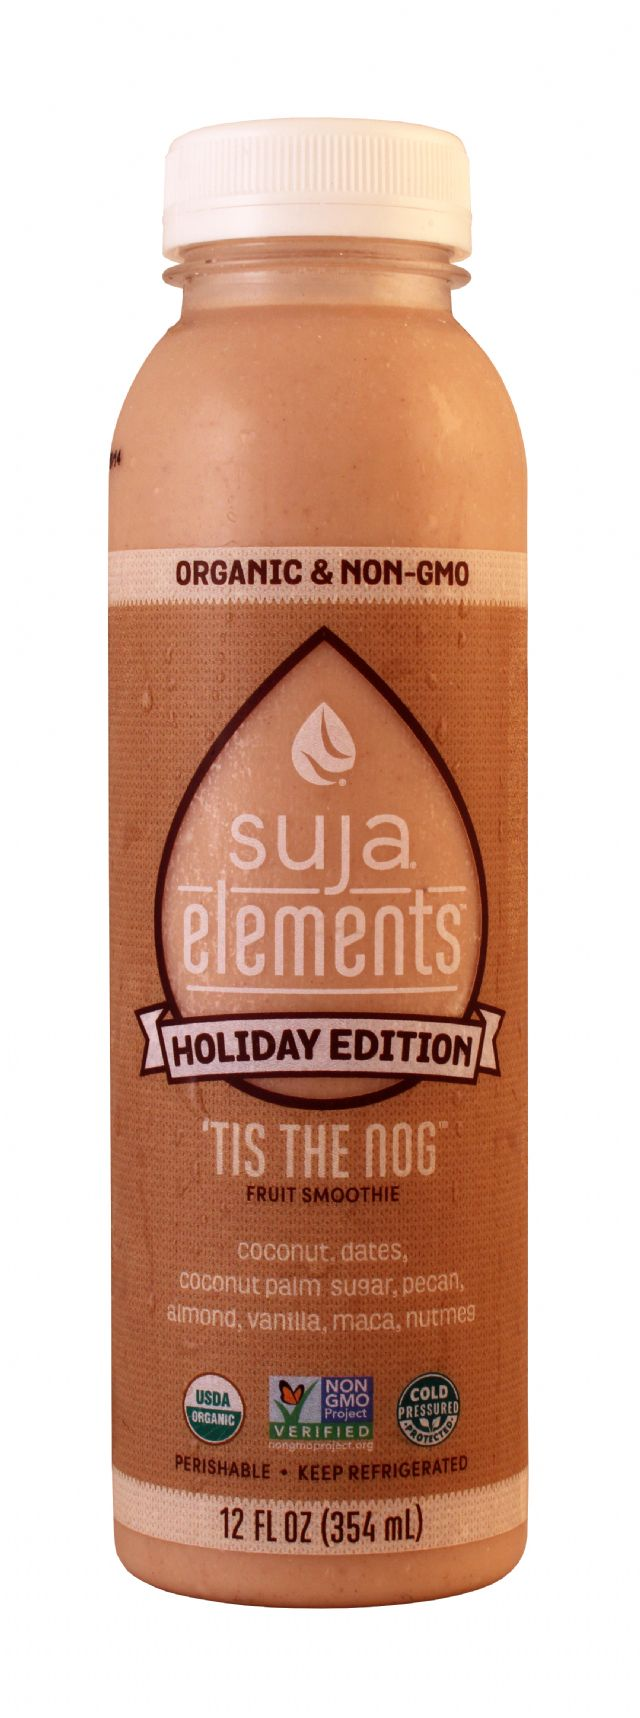 Suja Elements Holiday Edition: Suja TisTheNOG Front